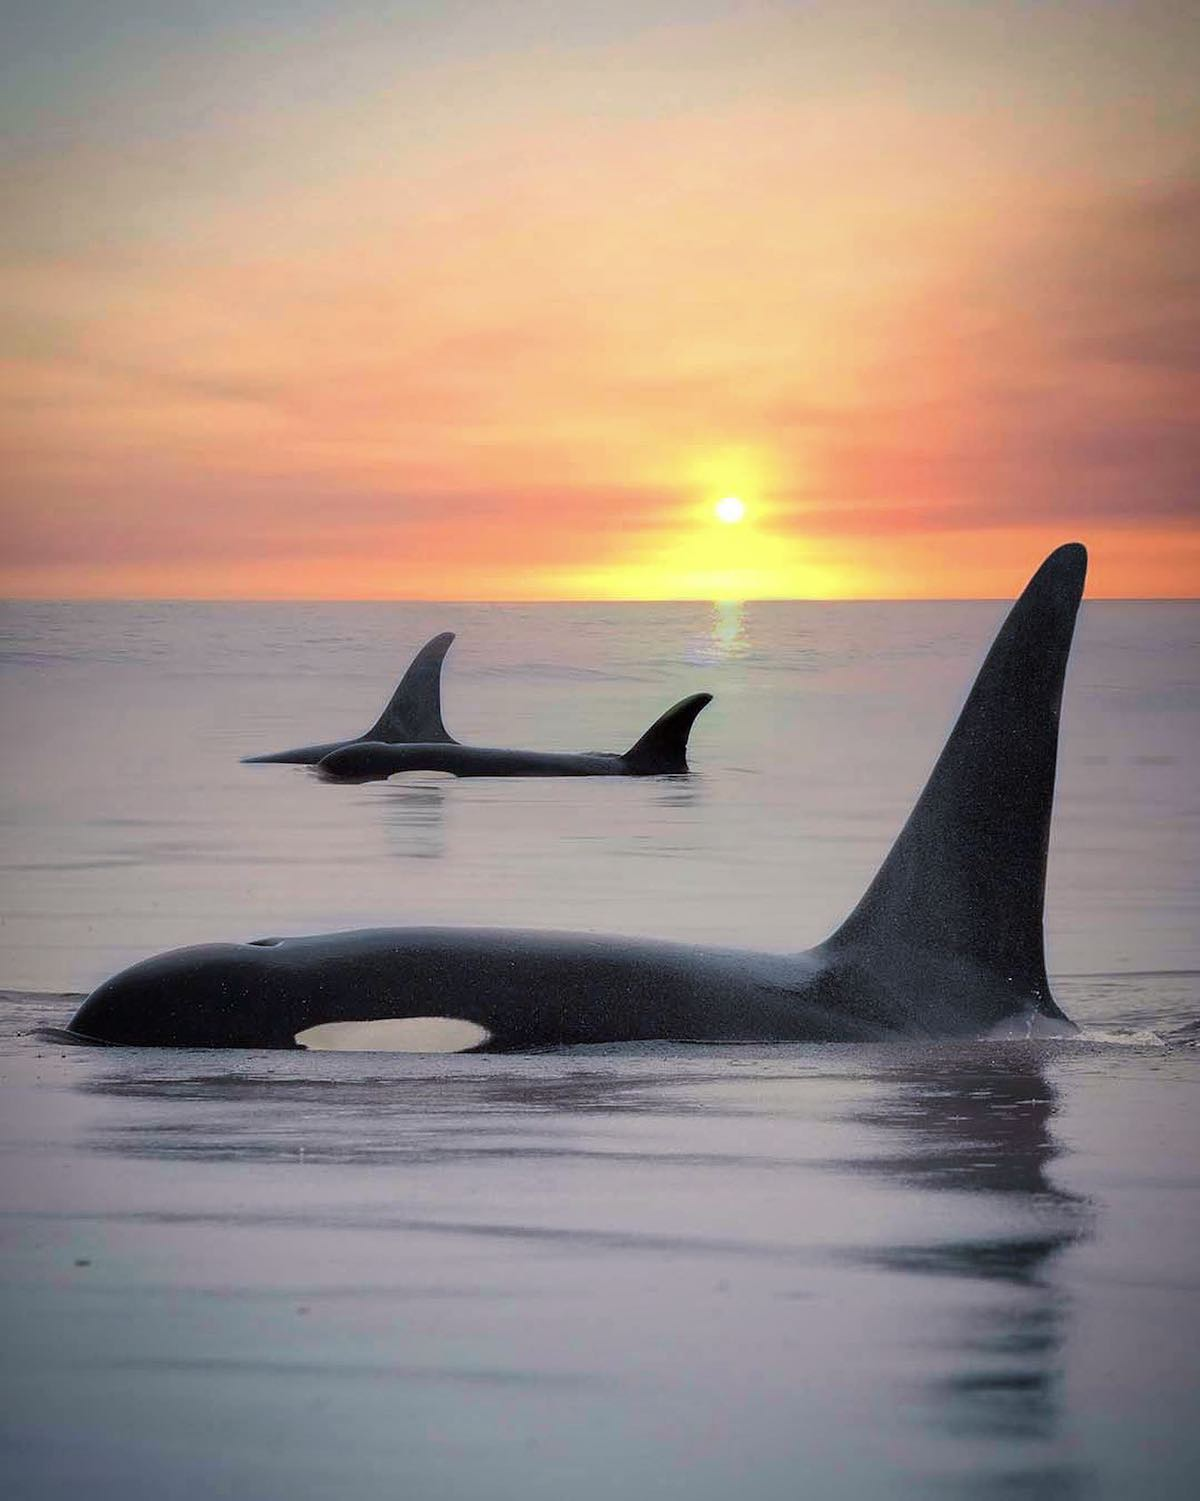 Killer Whale at Sunset by Mary Parkhill